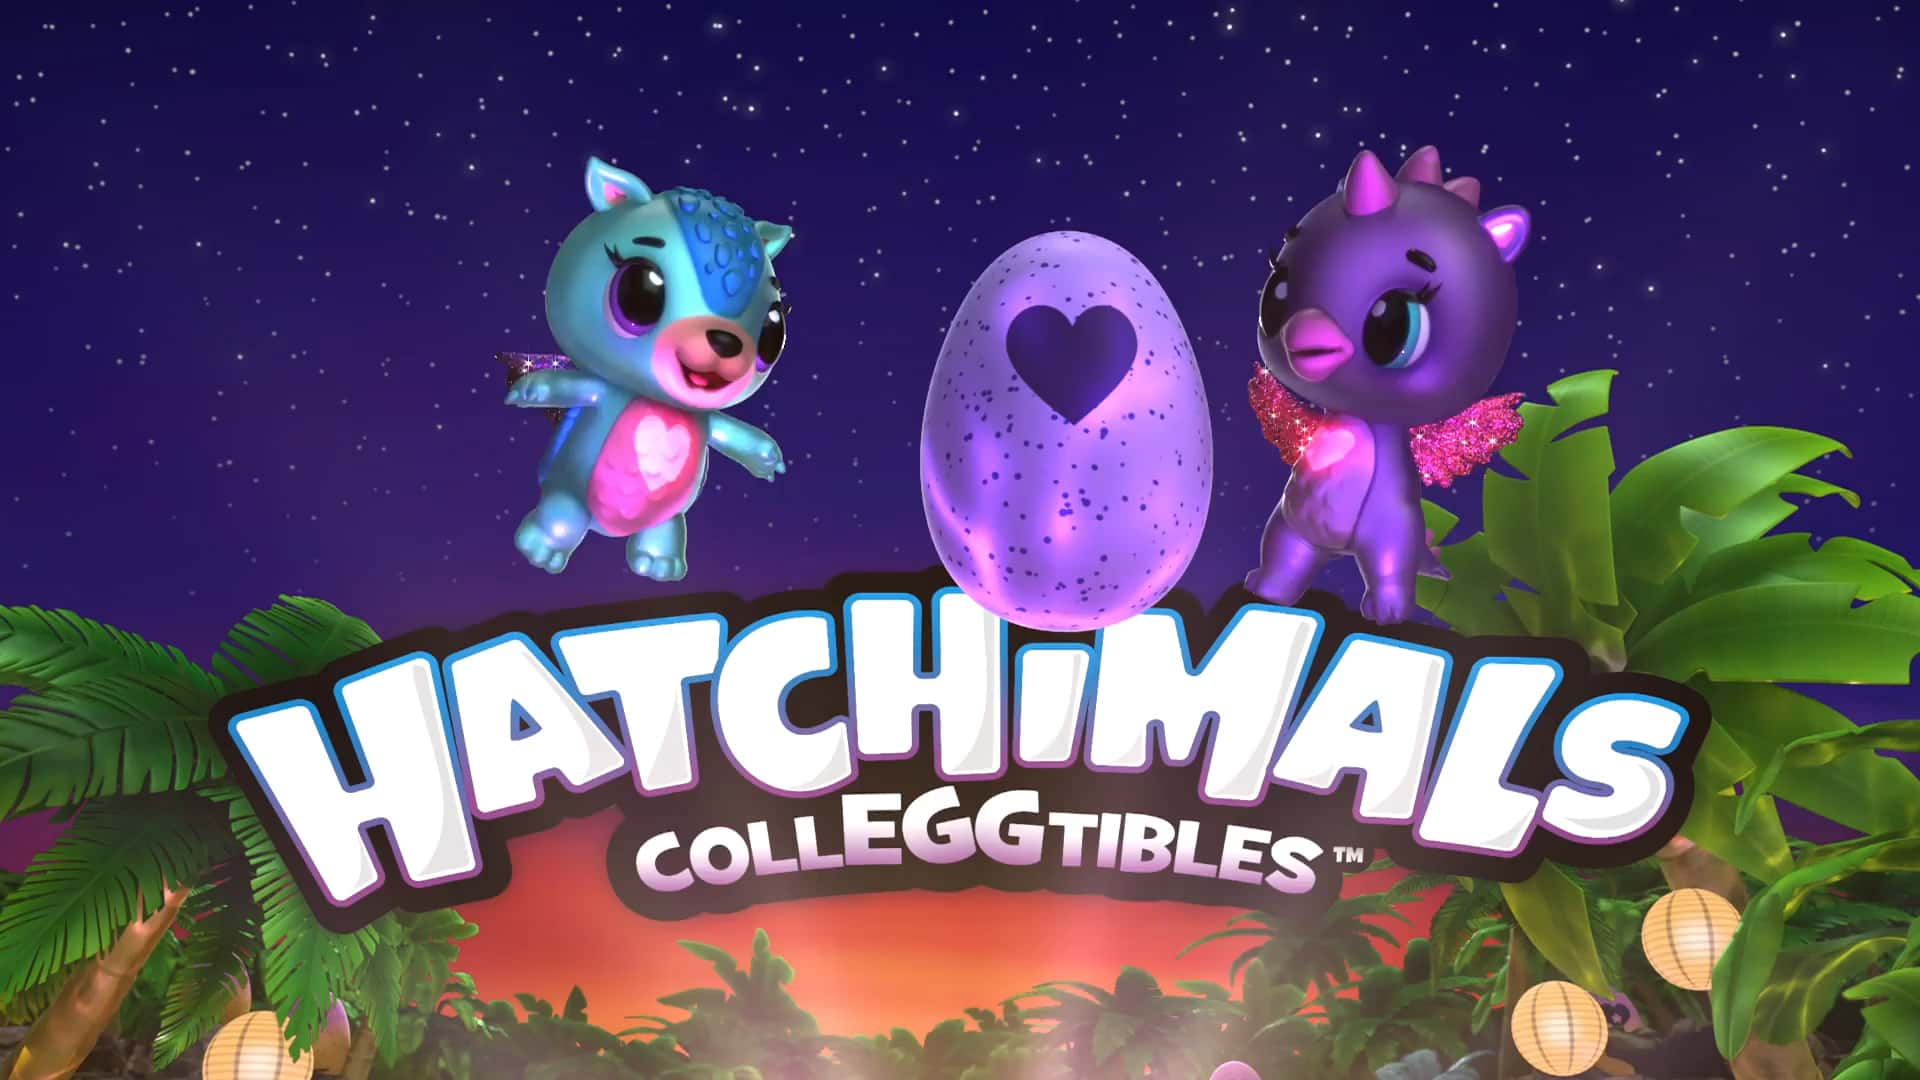 Hatchimals | Colleggtibles